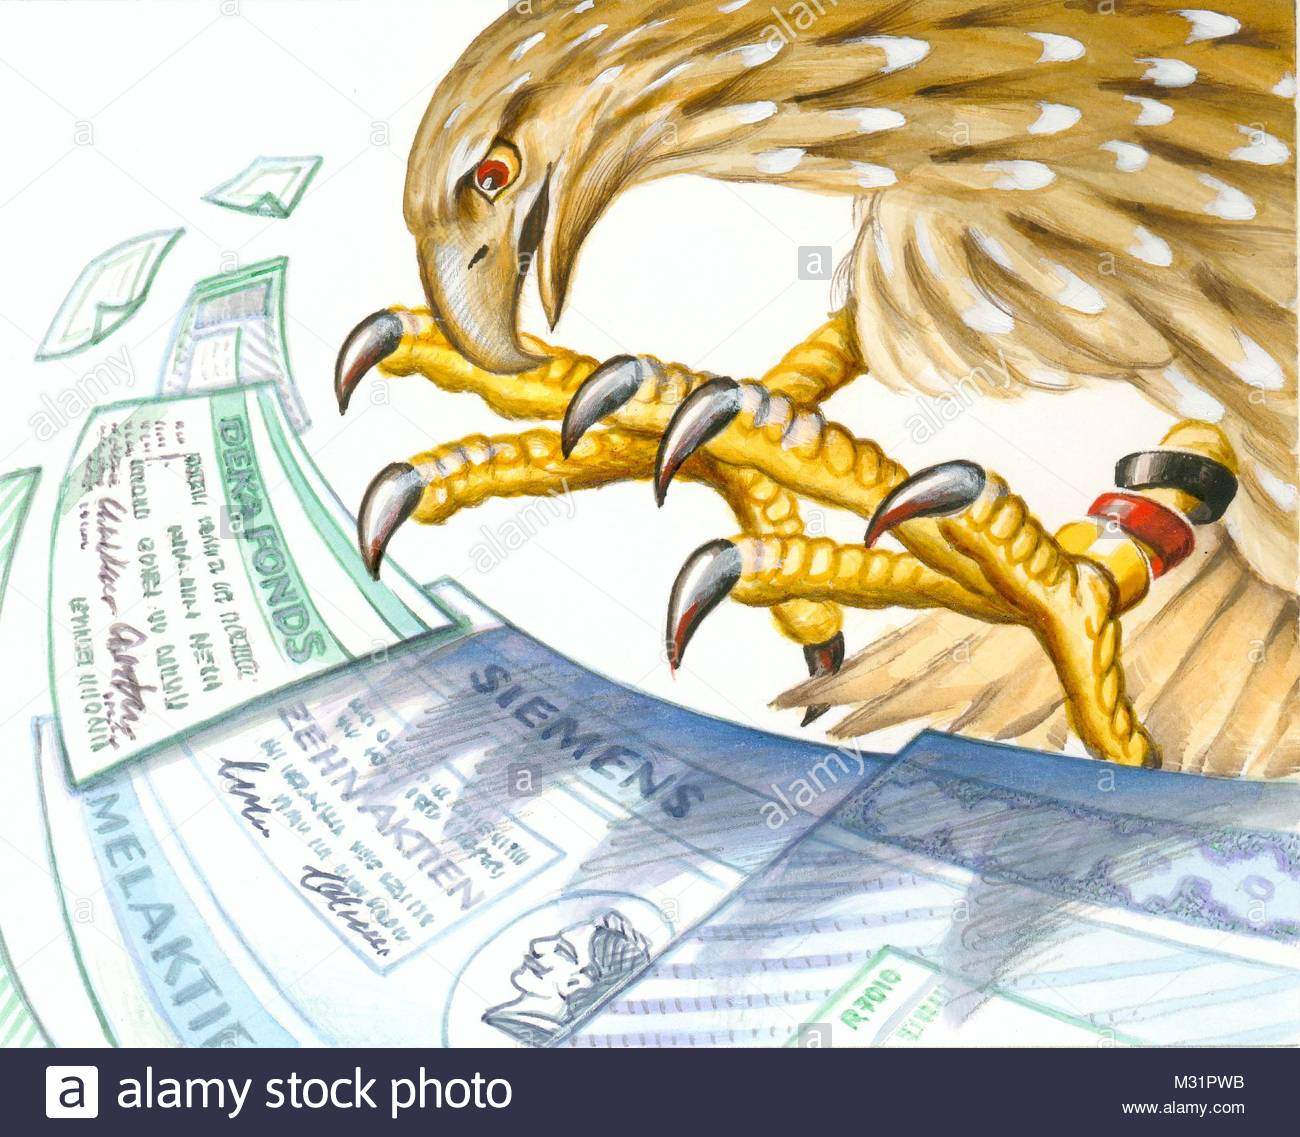 Eagle theft shares - Stock Image